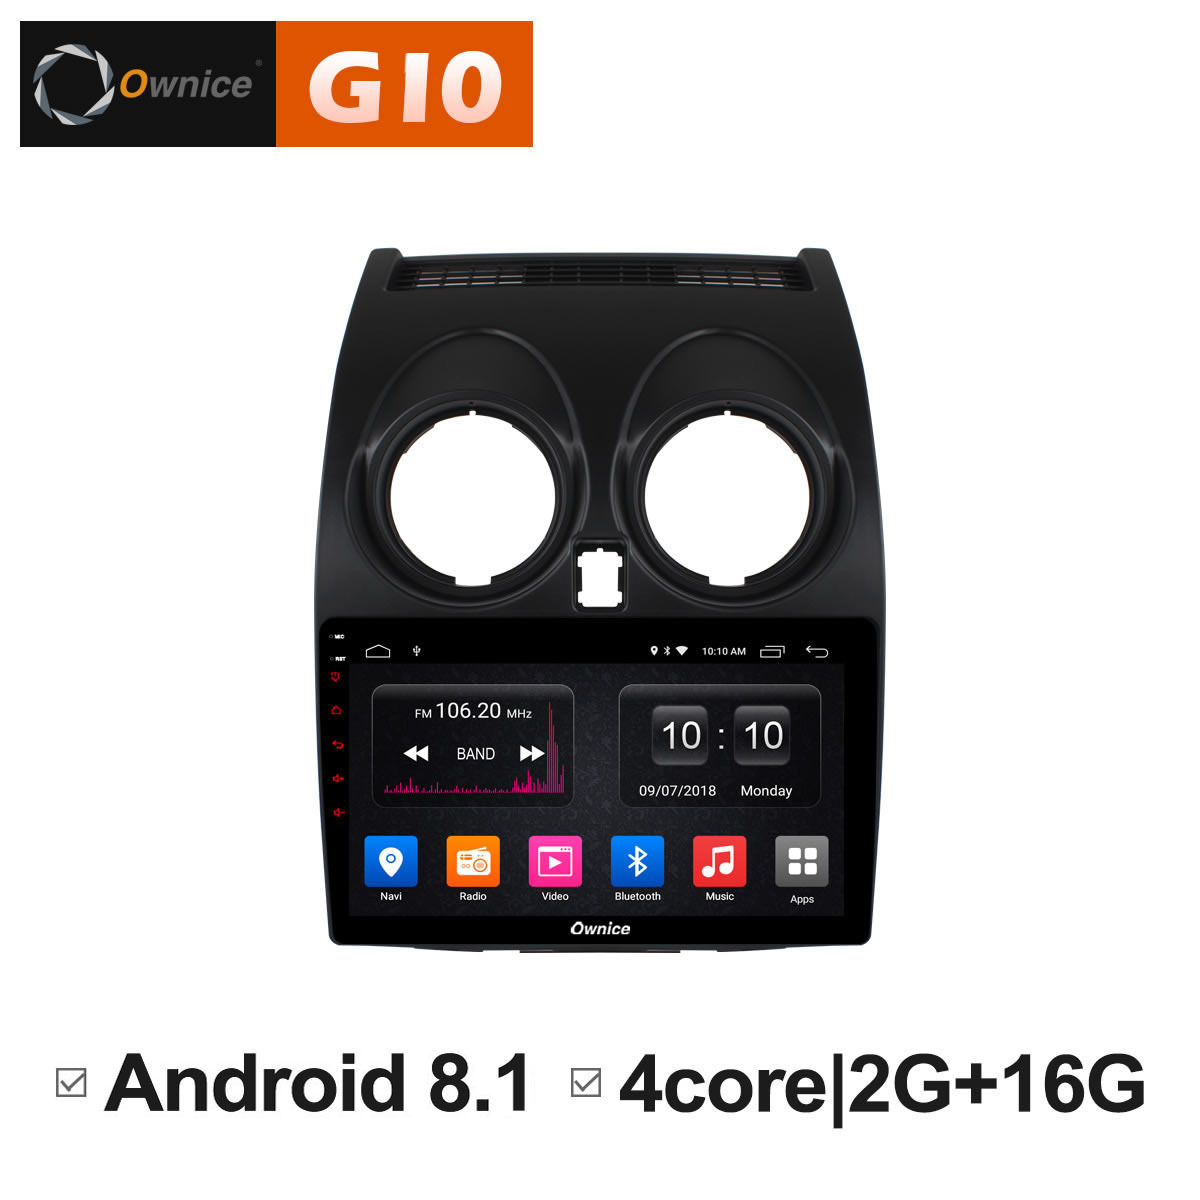 Android 8.1 Unit Intelligent Car radio stereo DVD Multimedia player for Nissan Qashqai 2007 2009 2010 2011 2012 GPS Navigator PC for mazda 6 ruiyi ultra 2008 2009 2010 2011 2012 android unit radio stereo multimedia player 1 2 din dvd gps navigator carplay